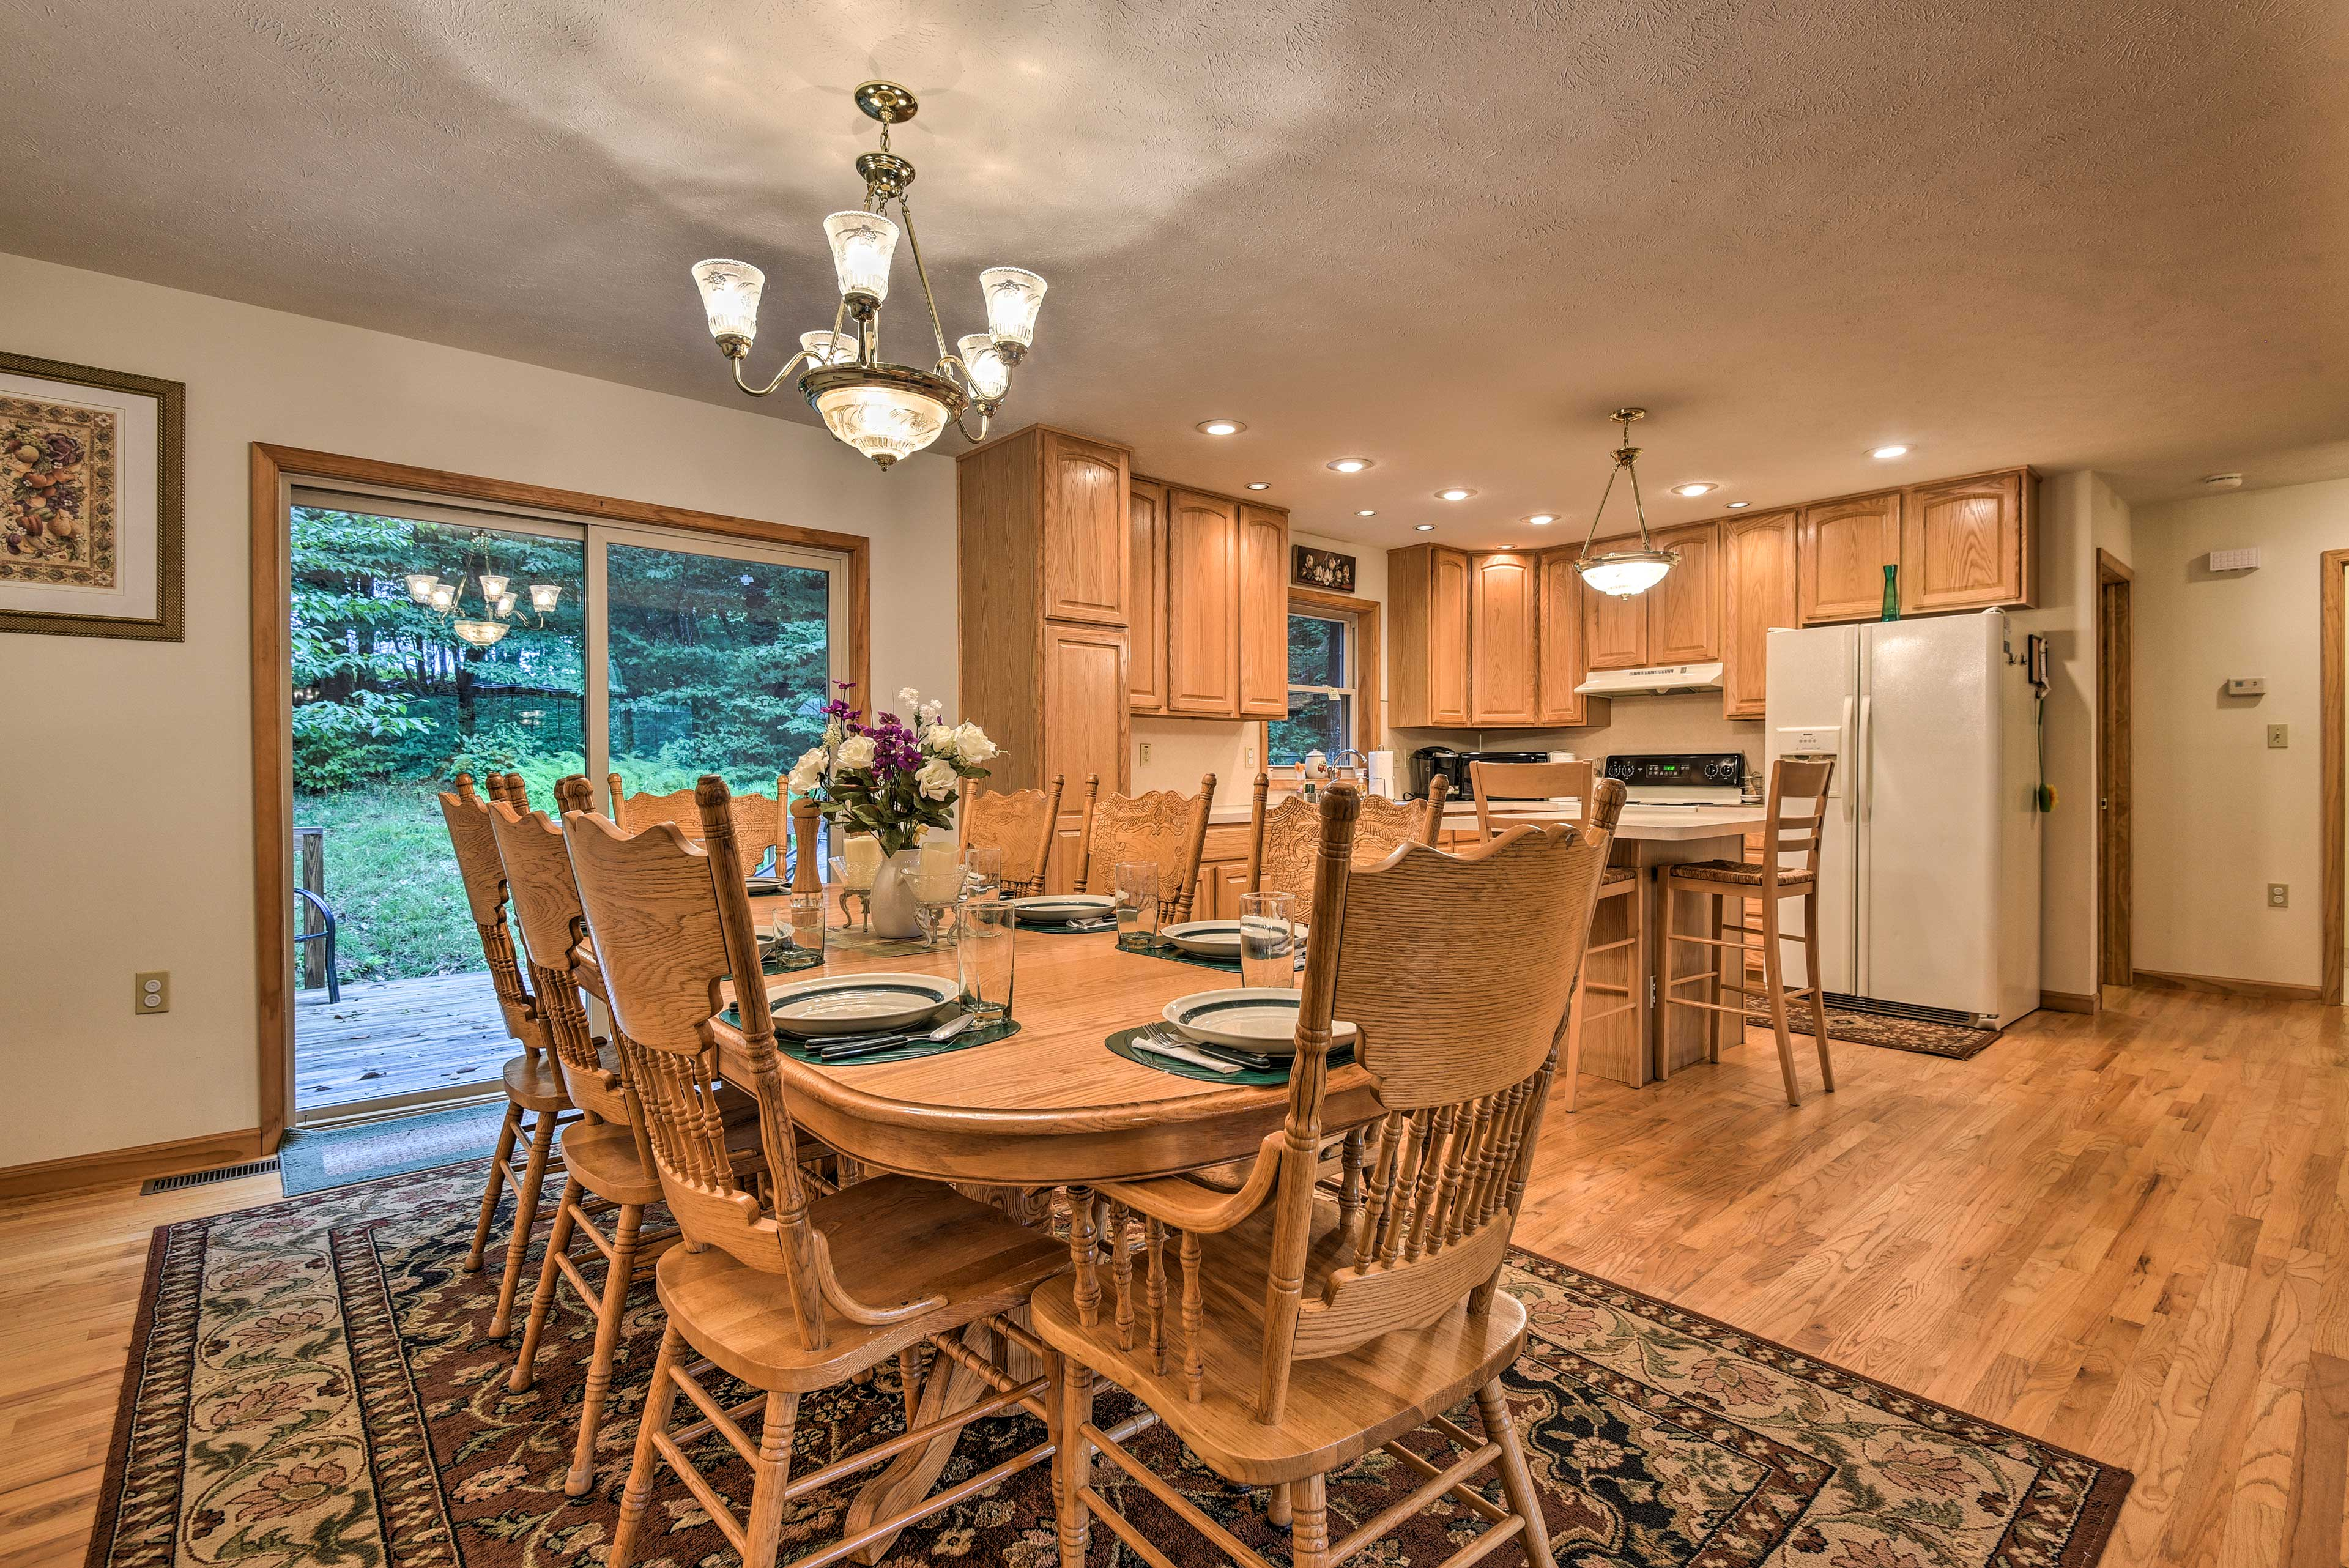 Enjoy a home-cooked meals at the large dining table.